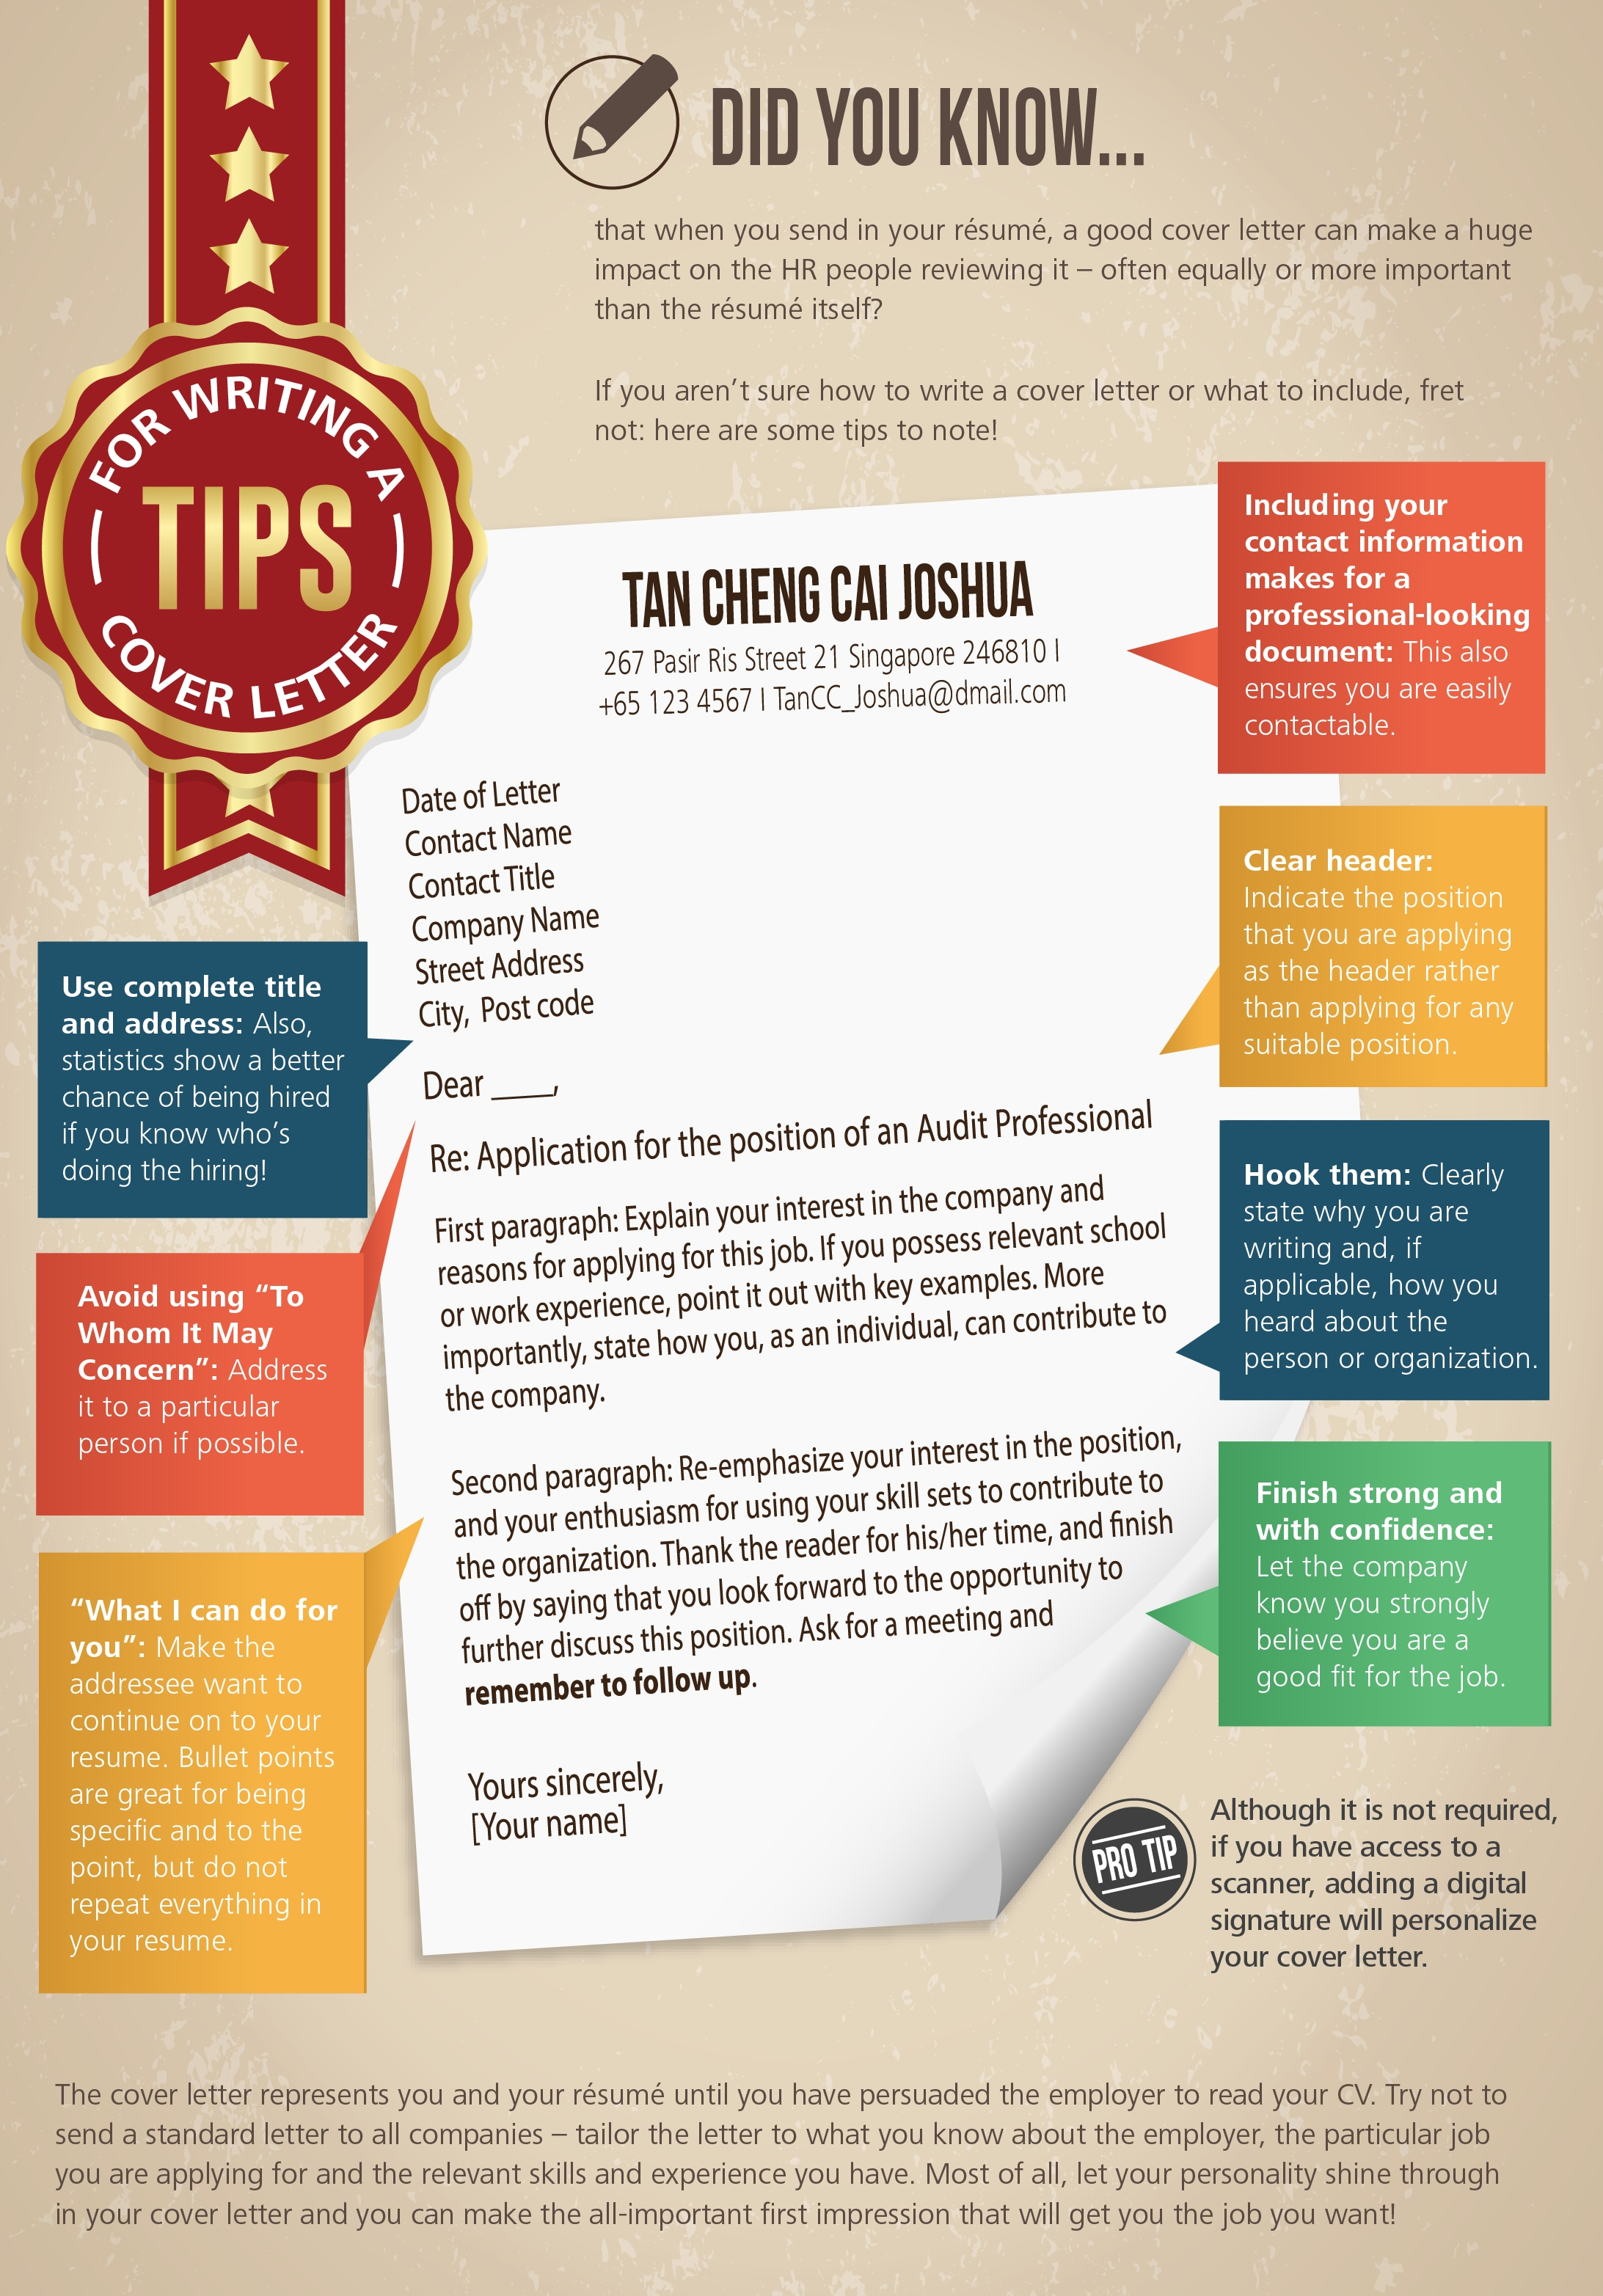 Tips for writing a cover letter | Deloitte Singapore ...